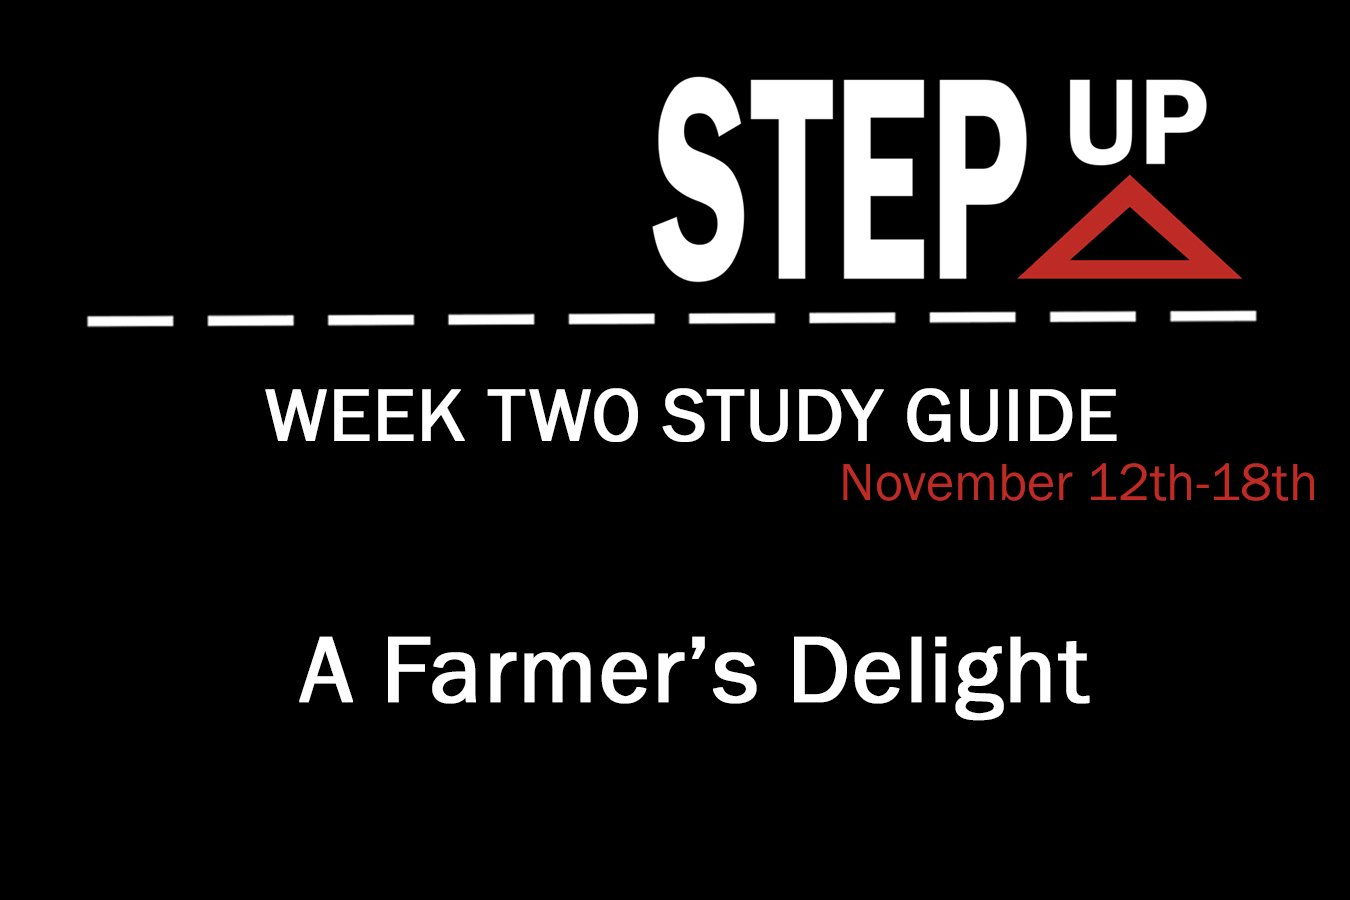 Step Up: Week Two Study Guide